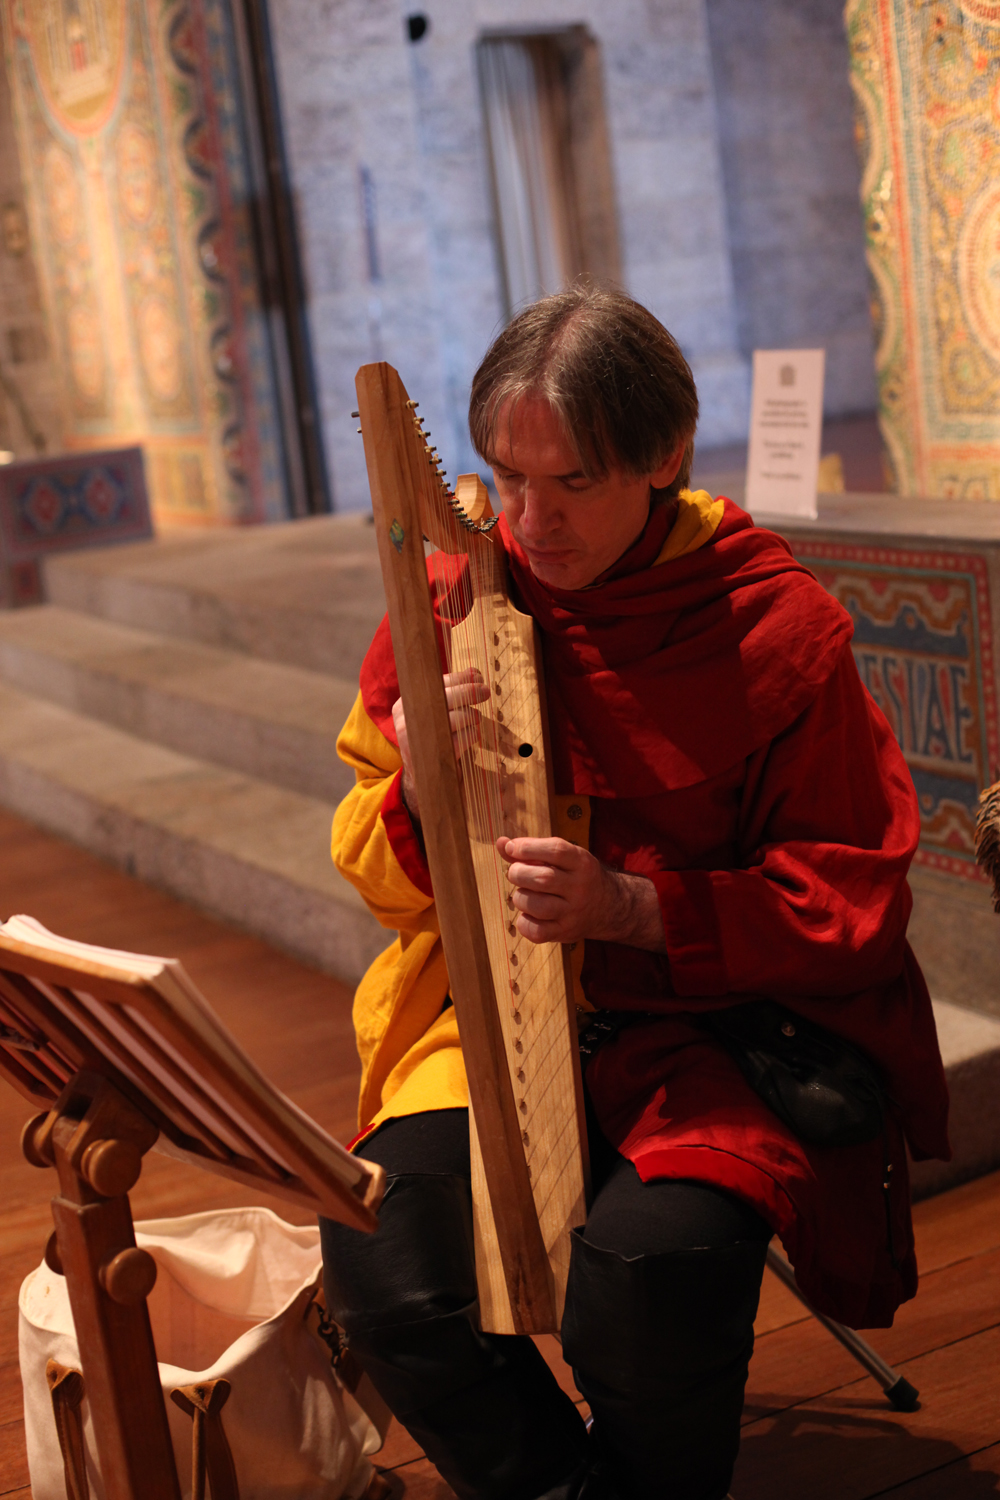 Paul Butler of New Jersey plays medieval music on replica medieval instruments.